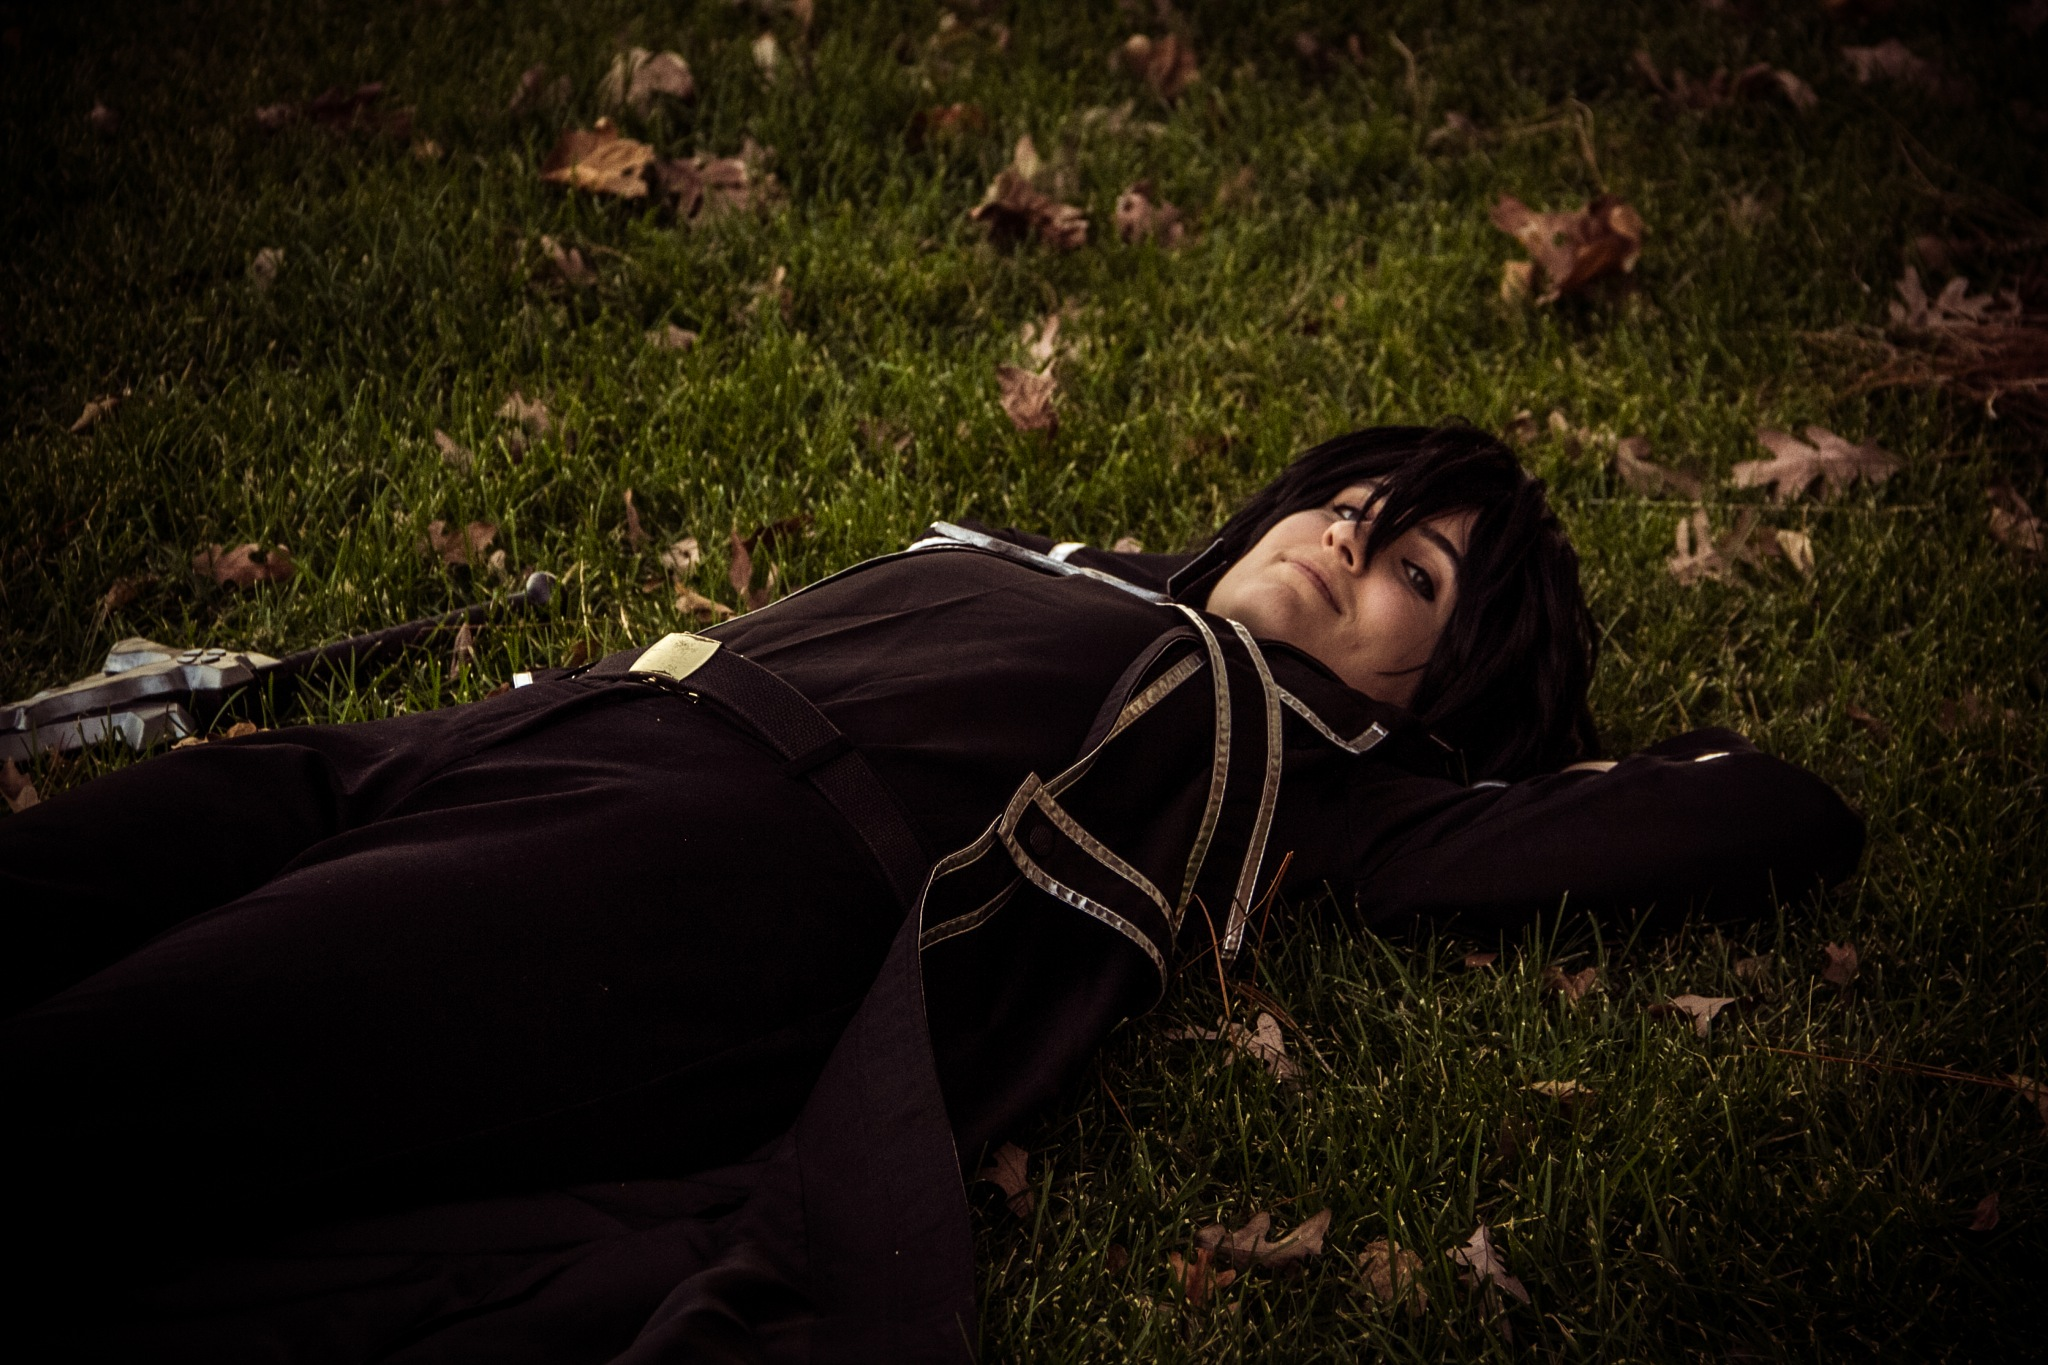 Ichibancon 2017 - IIloria Cosplay - Session #1 Sword Art Online by Gina Adkins